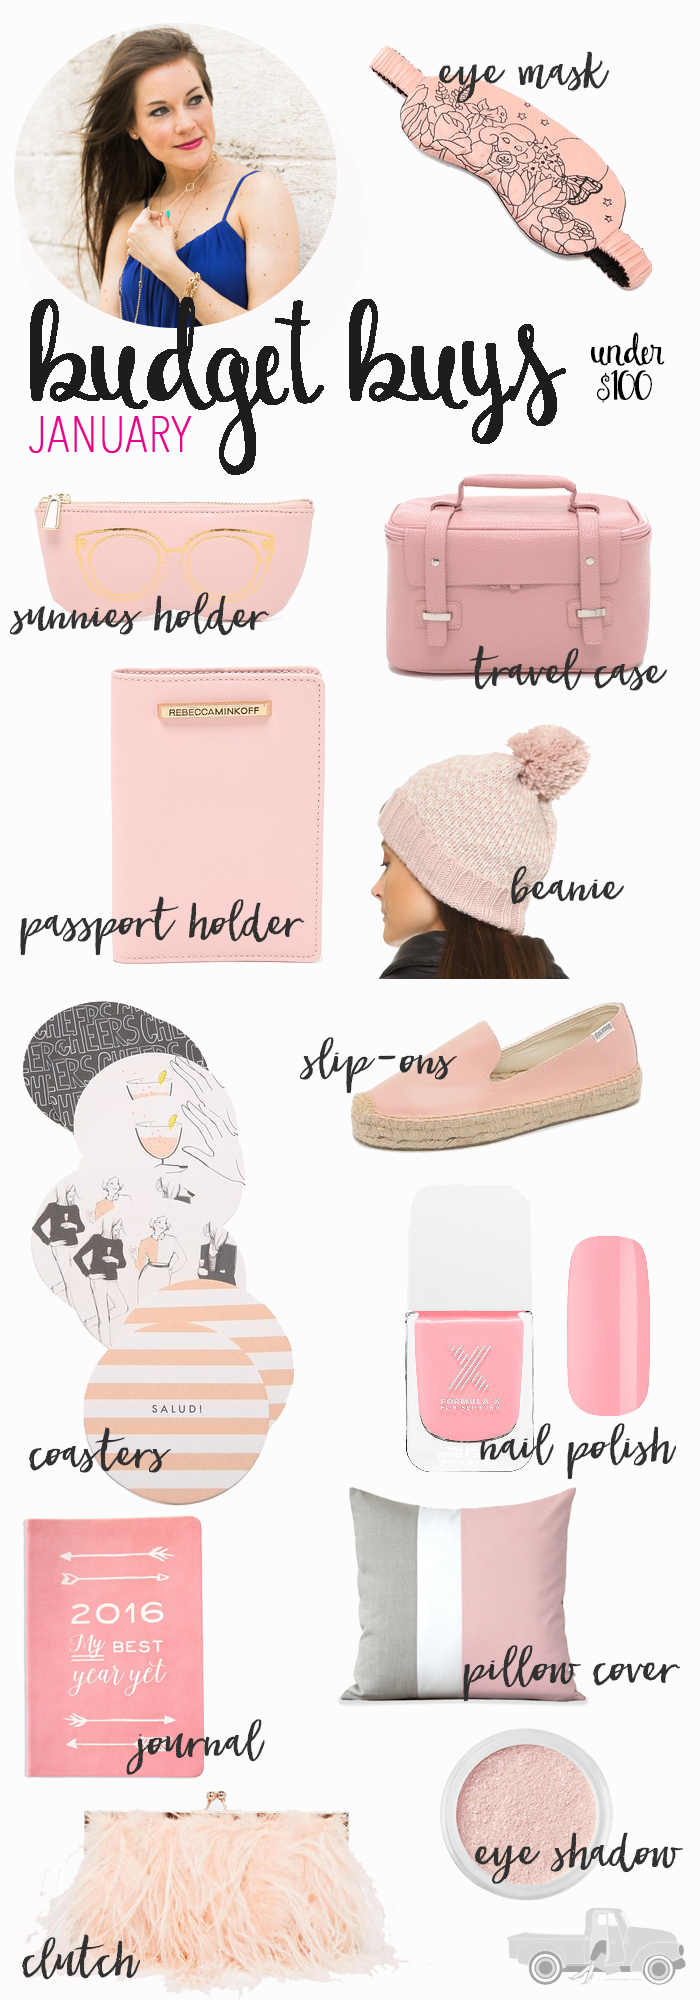 Are you crushing on Rose Quartz??  Which happens to be one of the colors selected as the Pantone Color of the Year for 2016? I know I sure am!! Here are my January Budget Buys Rose Quartz Edition